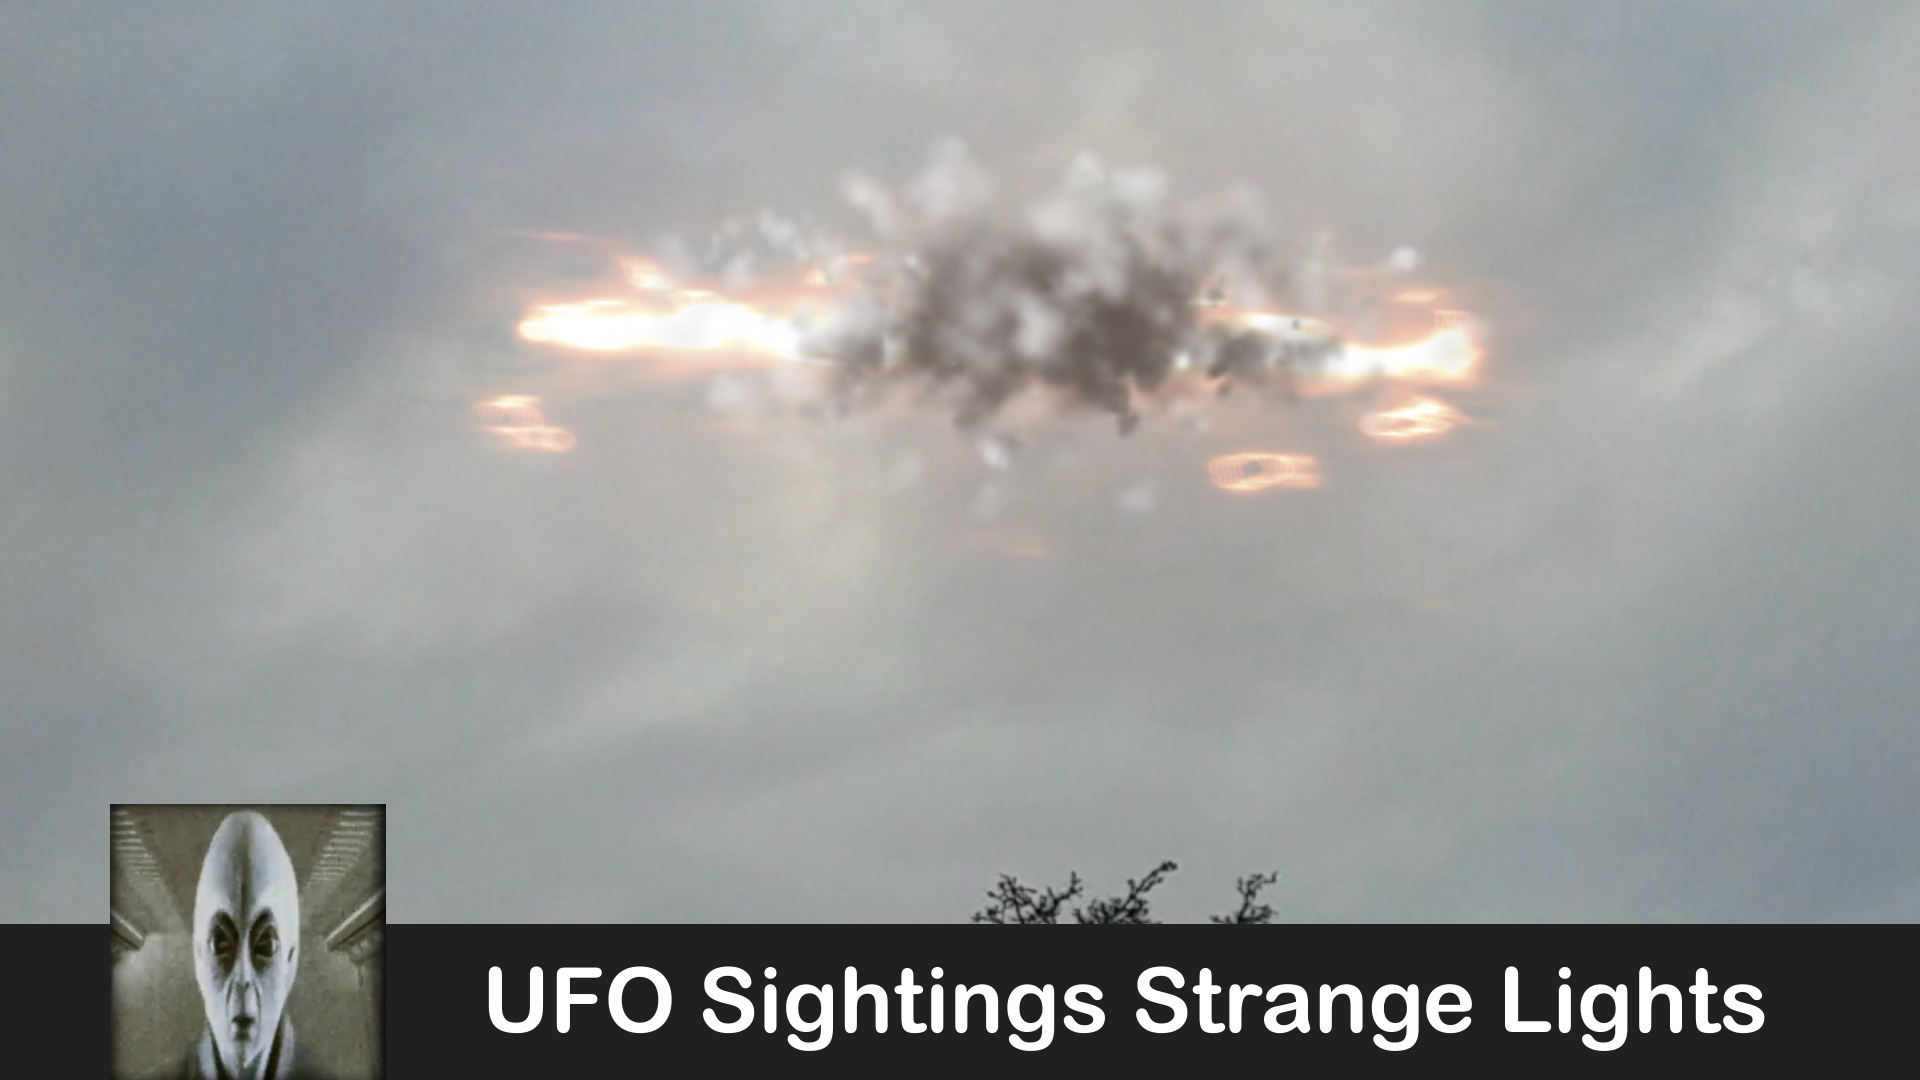 UFO Sightings Strange Lights March 21st 2017 | iufosightings